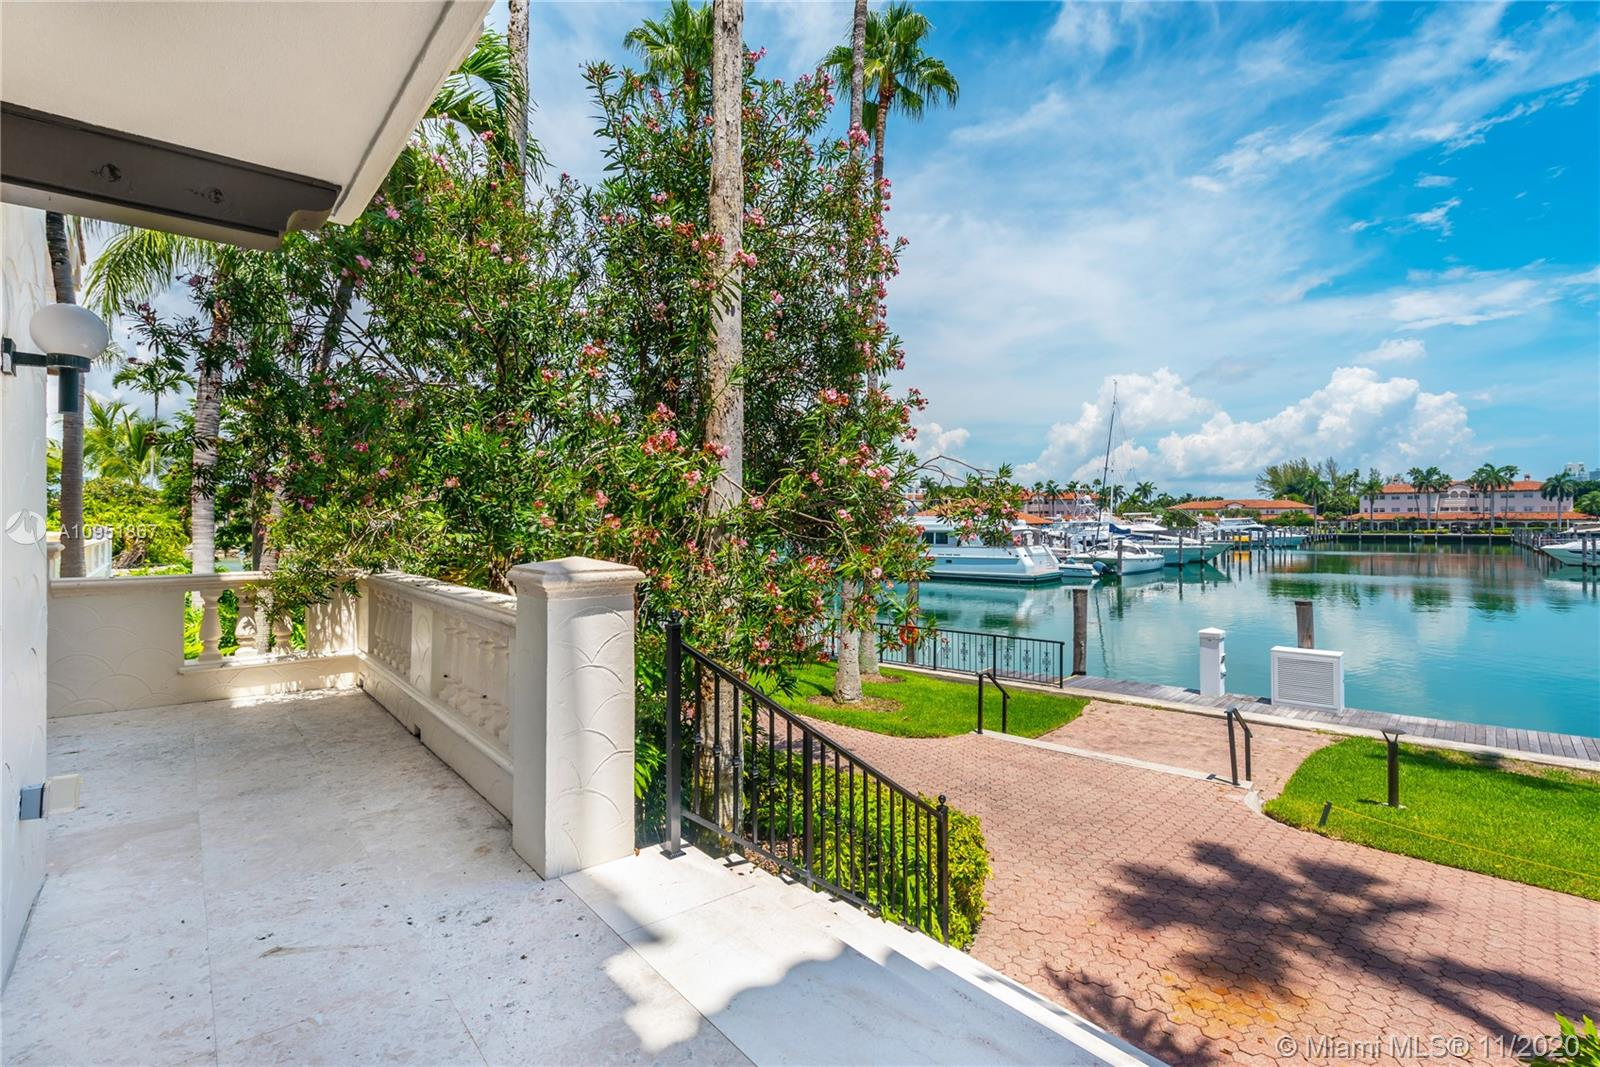 2514 Fisher Island Dr, Unit #6104 Luxury Real Estate